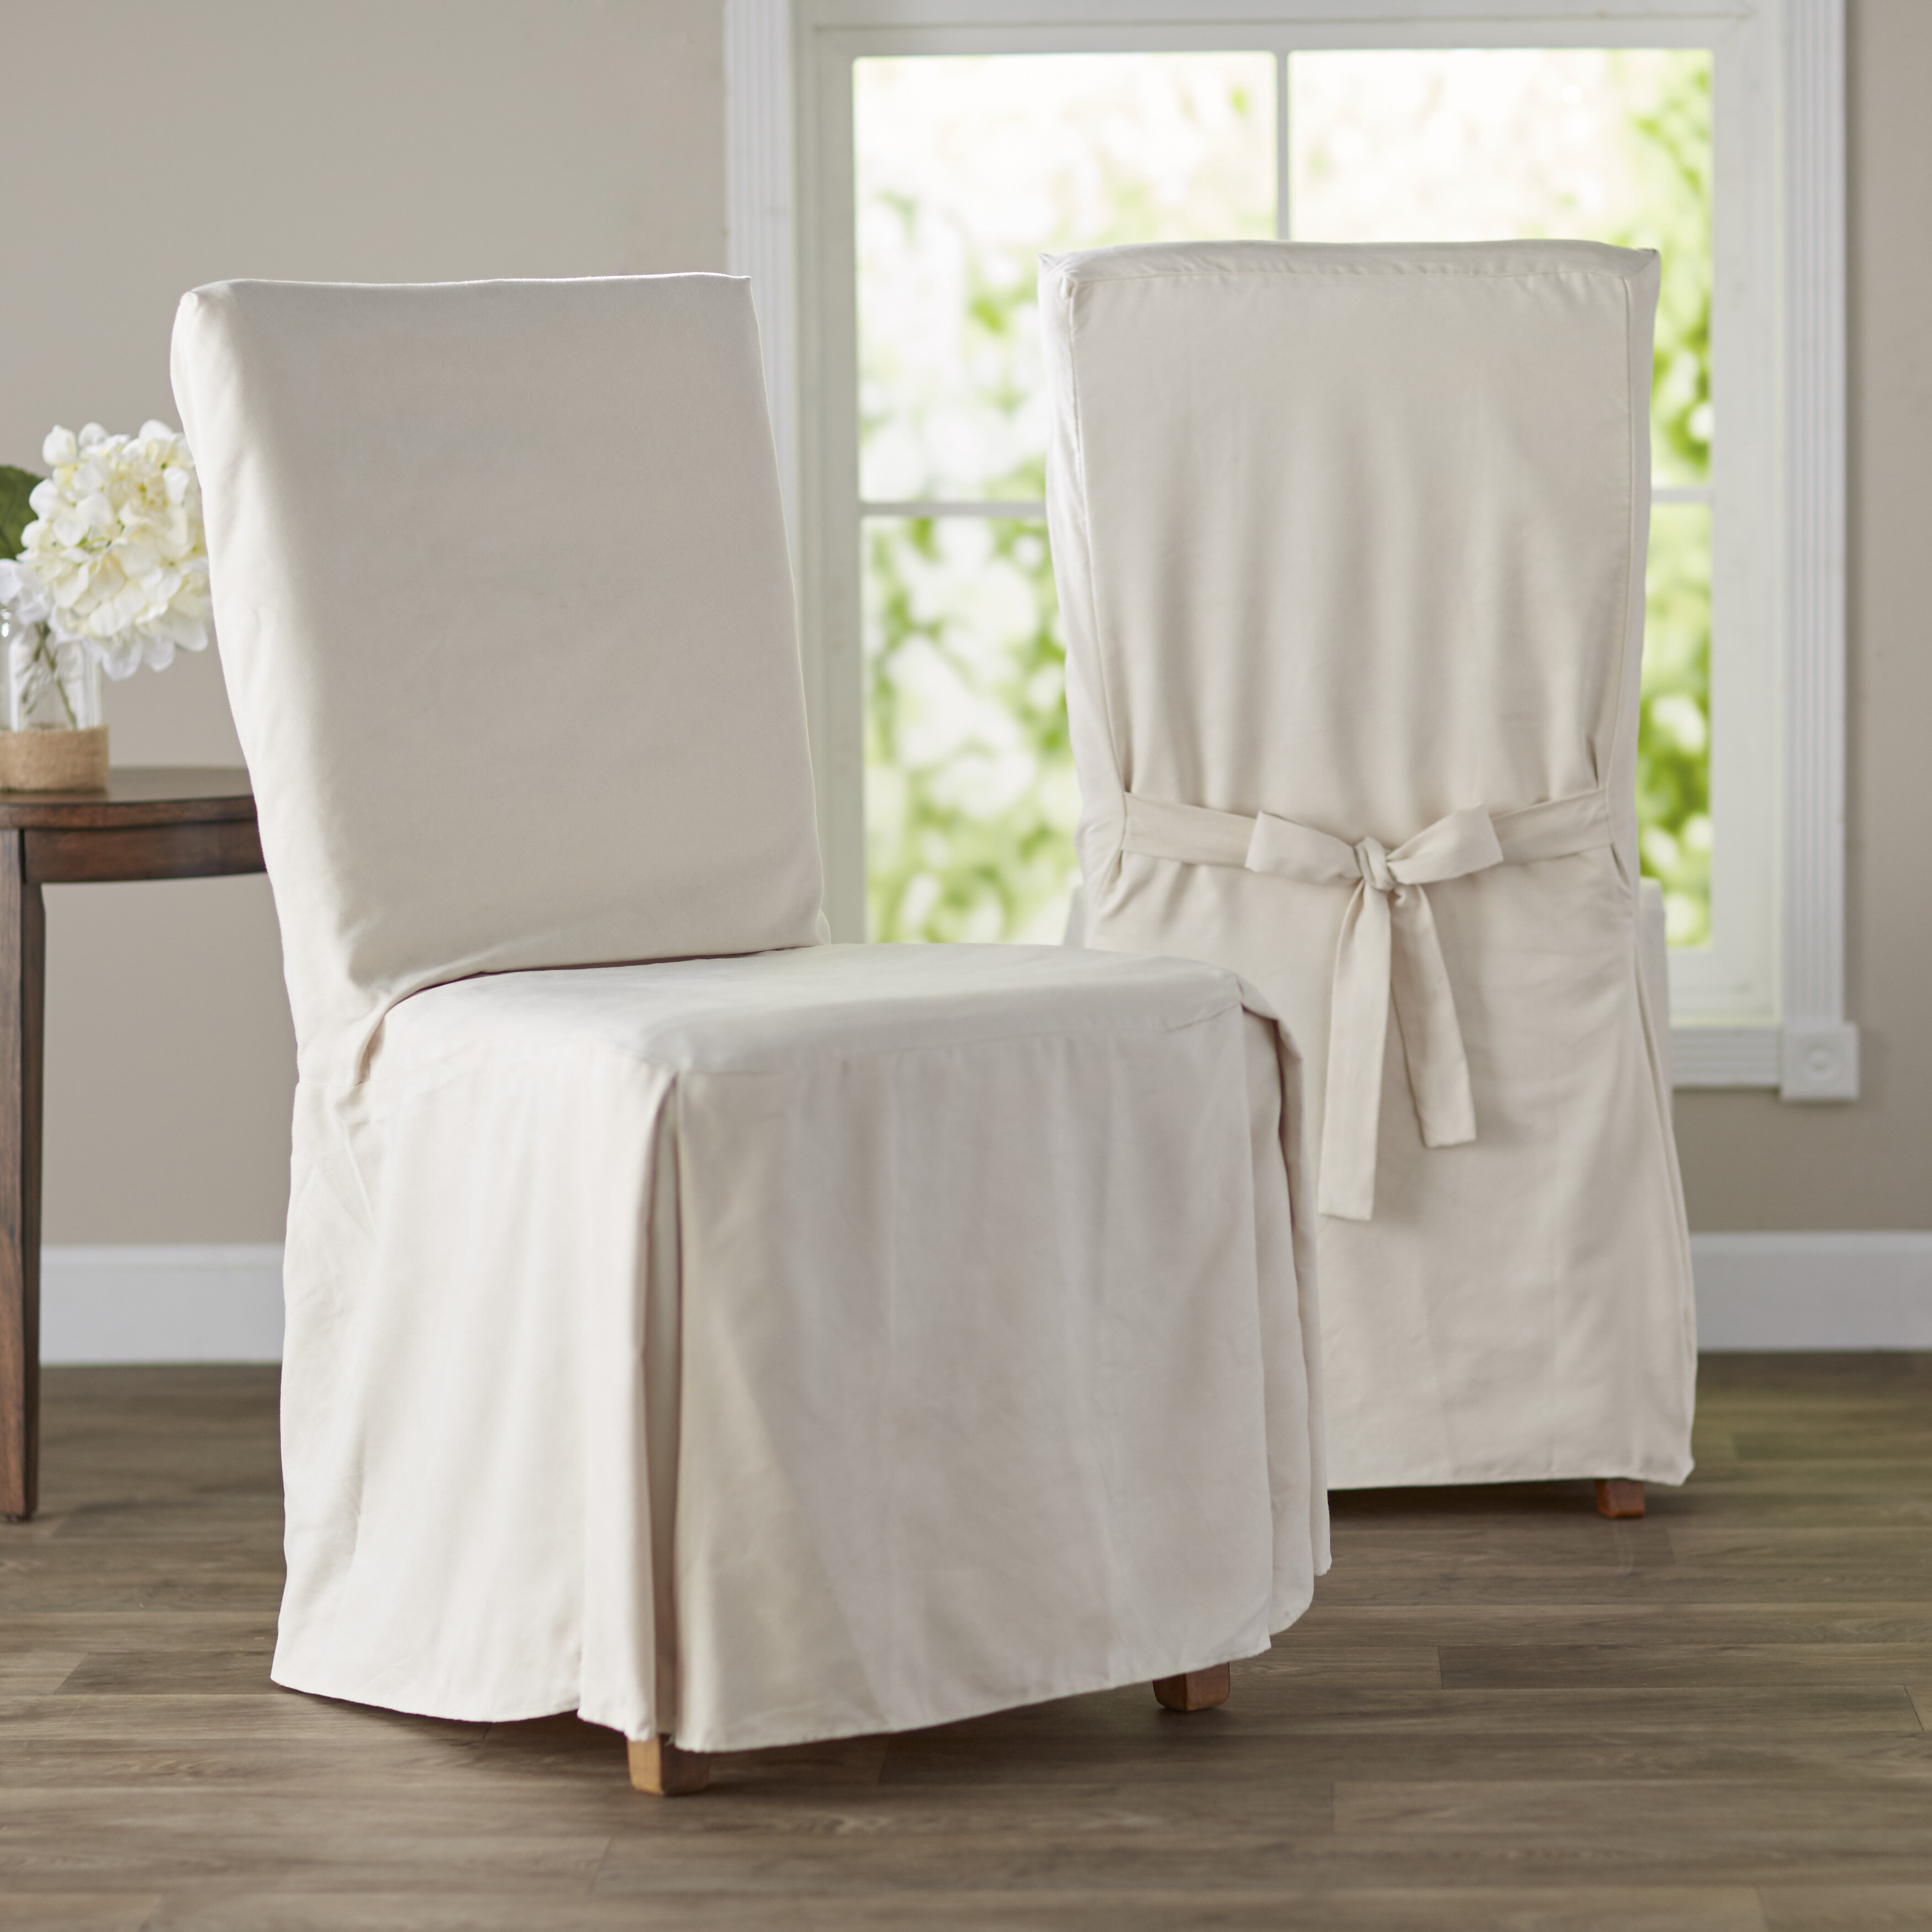 Serta Dining Chair Regular Slipcover U0026 Reviews | Wayfair